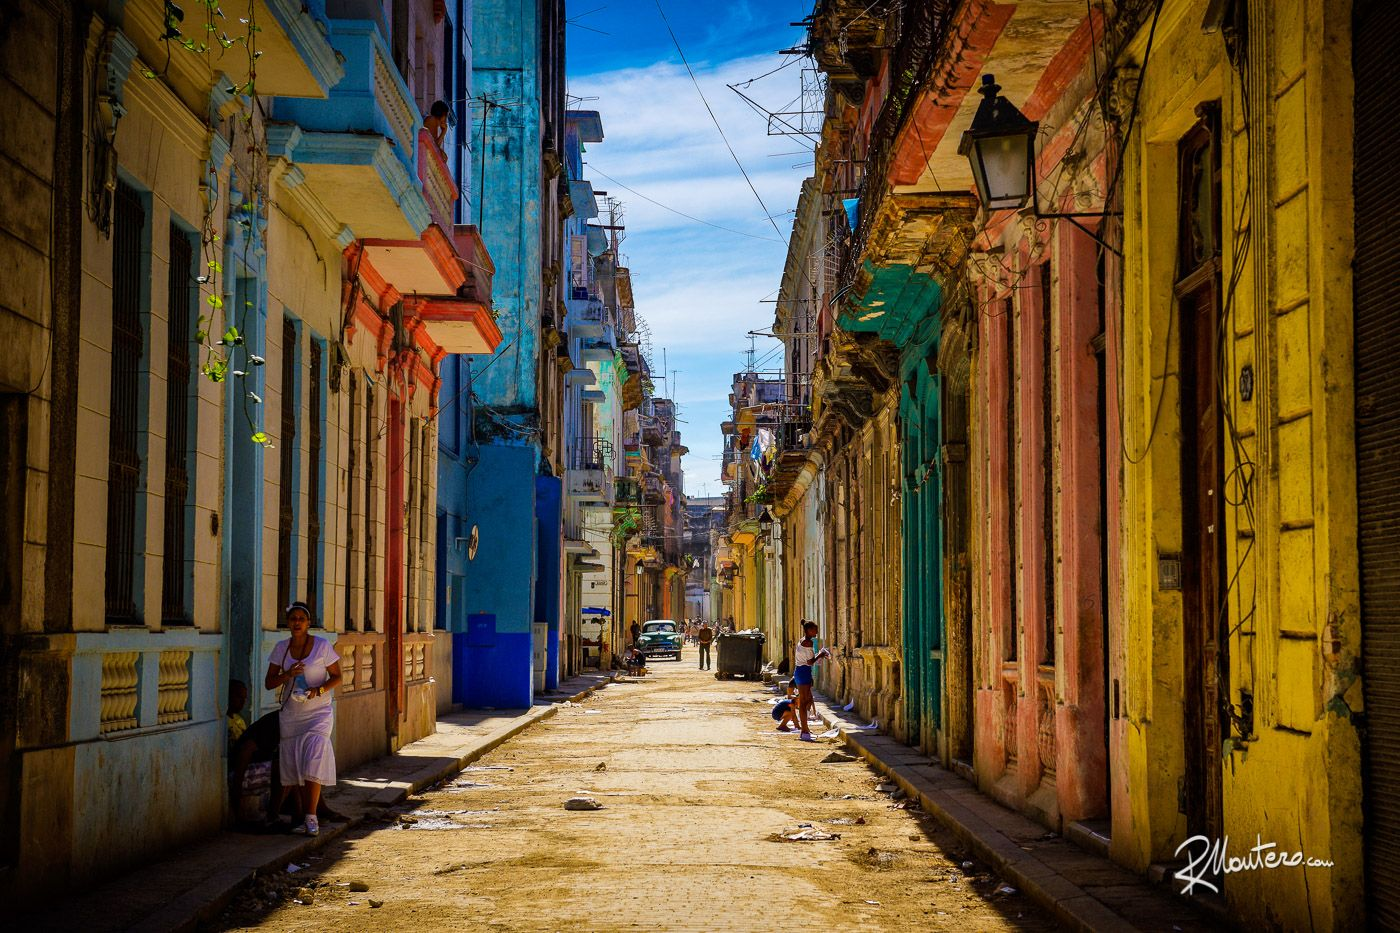 One of the super colored streets of the Havana. Cannot resist to that. http://bit.ly/FBRMM  All photos are property of mine as author and are made with @nikonusa D810 DSLR and @manfrottoimaginemore 190CX Pro4 tripod   #photooftheday #picoftheday #photo #swag #fun #me #cute #follow #instalike #likeforlike #instadaily #instamood #amazing #style #hot #beautiful #Mantero #followme #igers #nature #sky #sun #viewbugfeature #travel #wanderlust